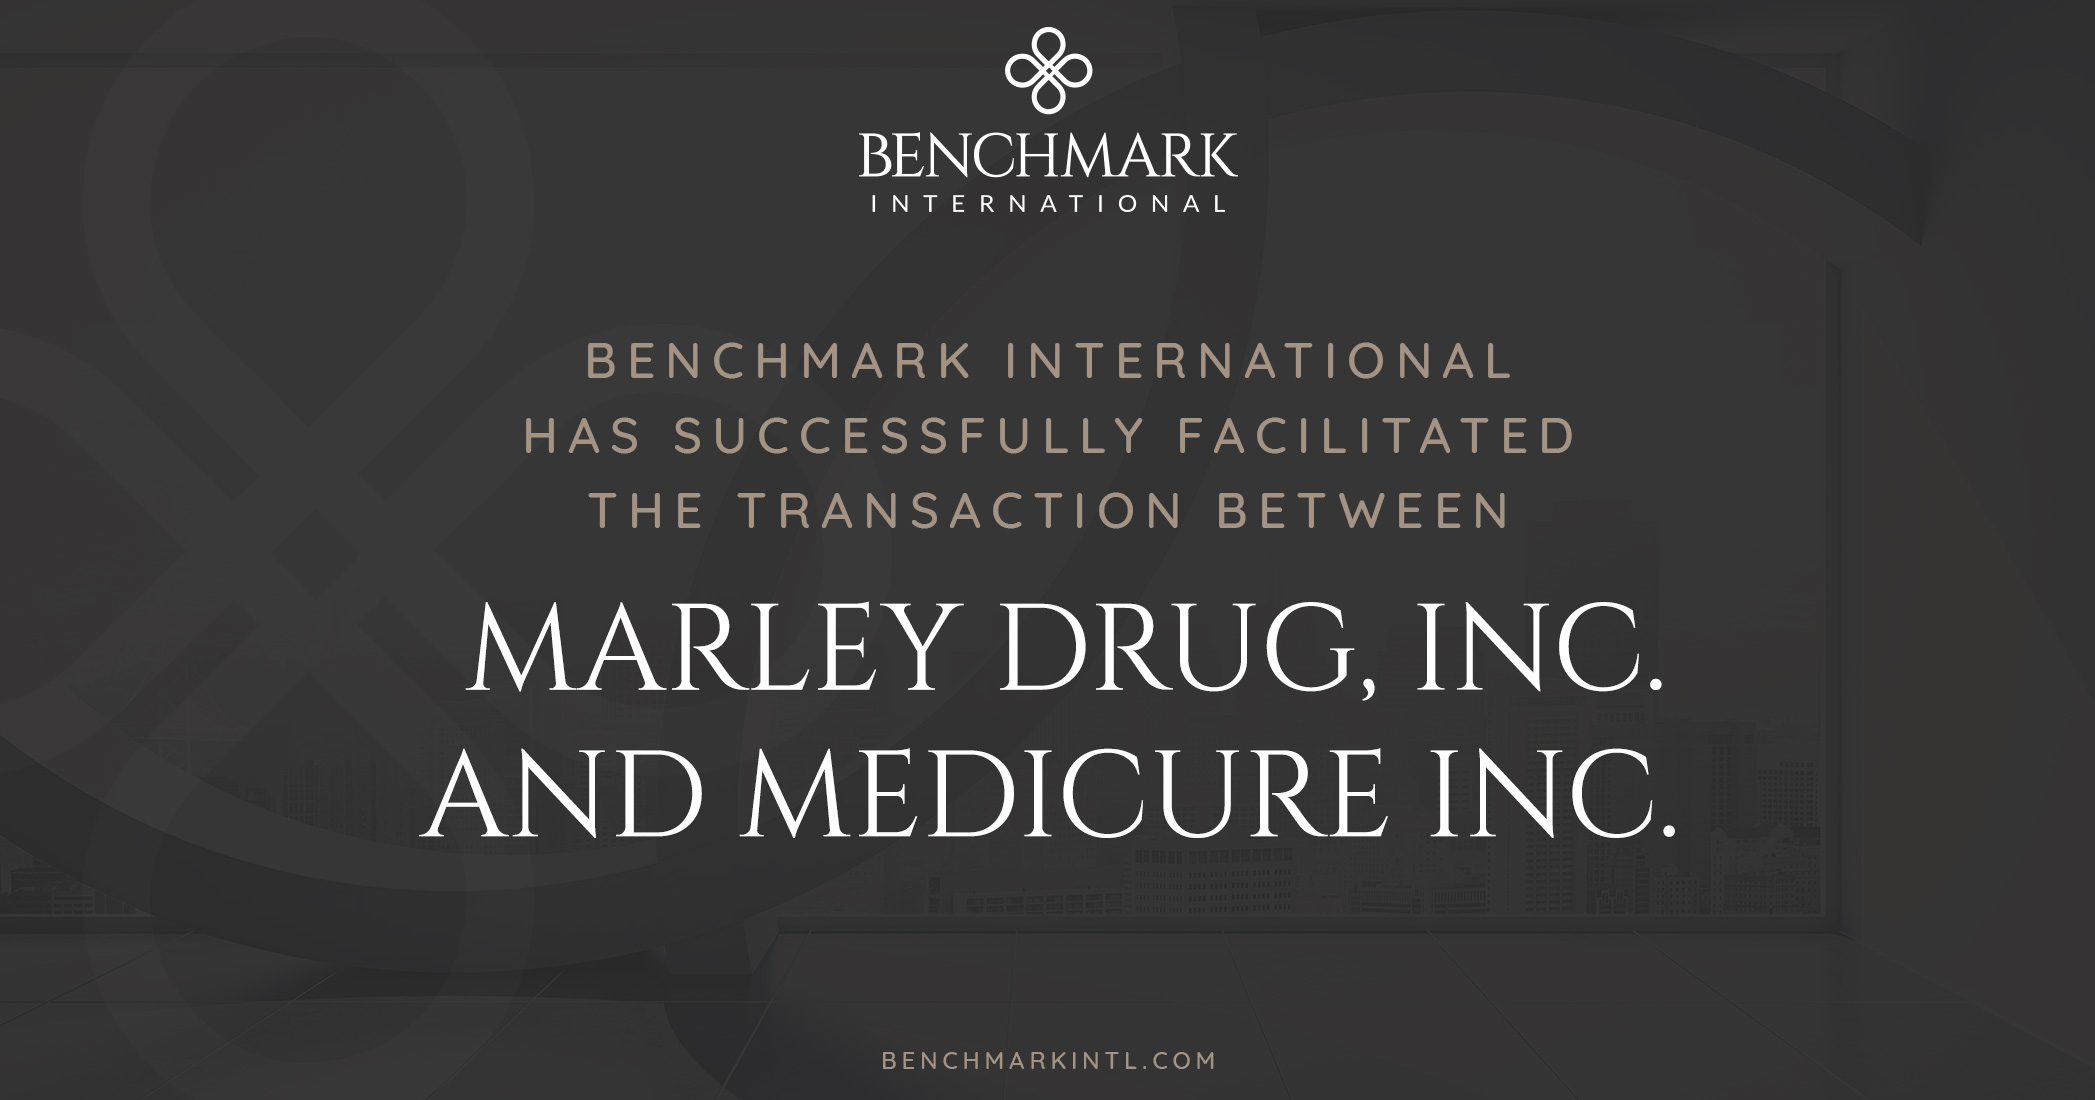 Benchmark International Successfully Facilitated the Transaction Between Marley Drug, Inc. and Medicure Inc.